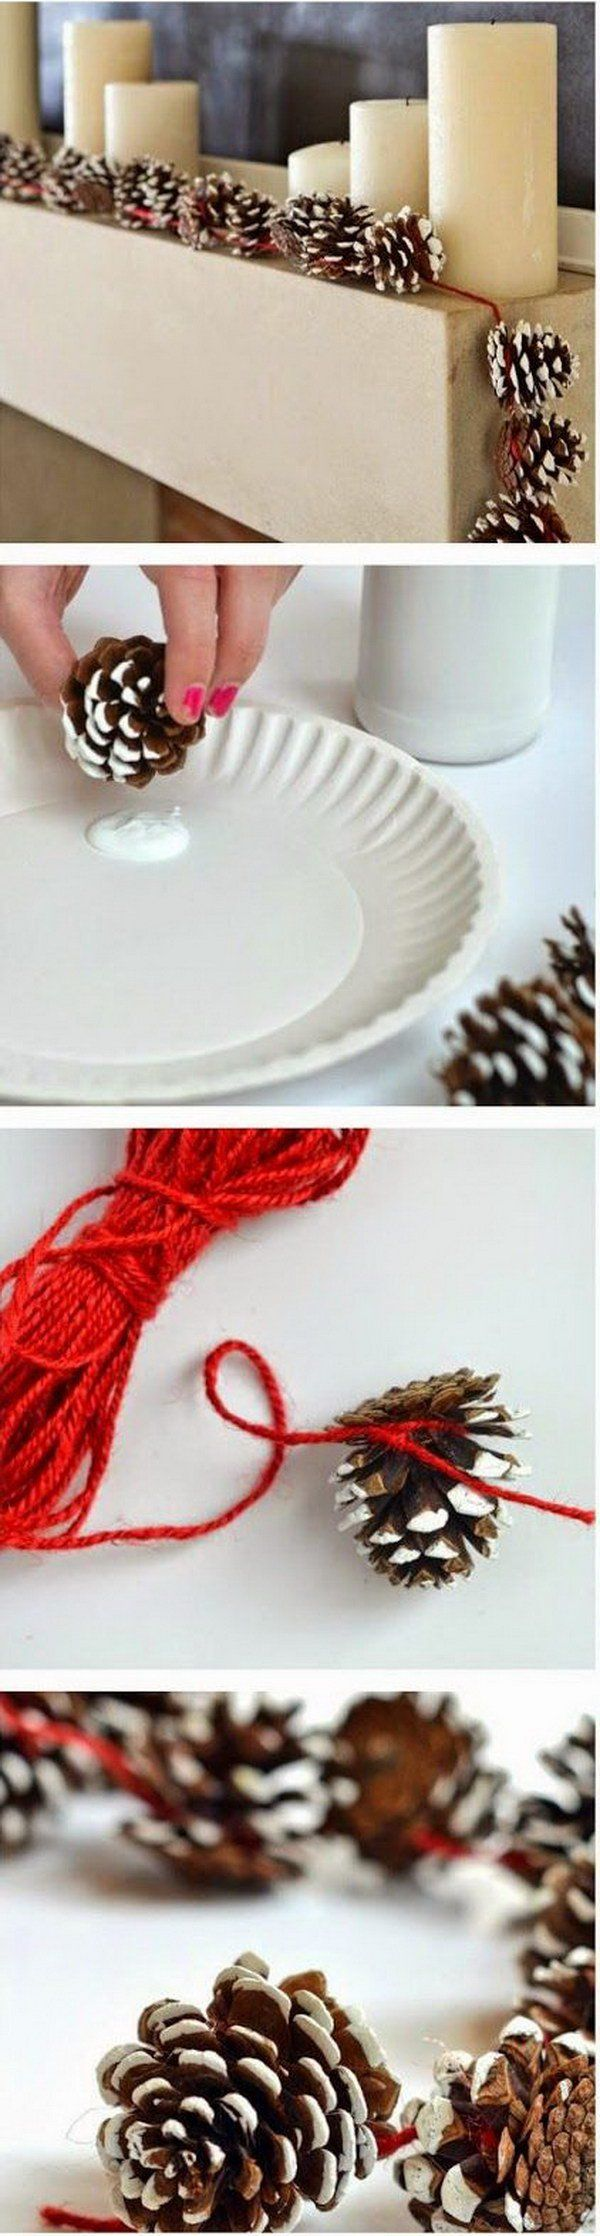 DIY Pinecone Garlands                                                                                                                                                                                 More